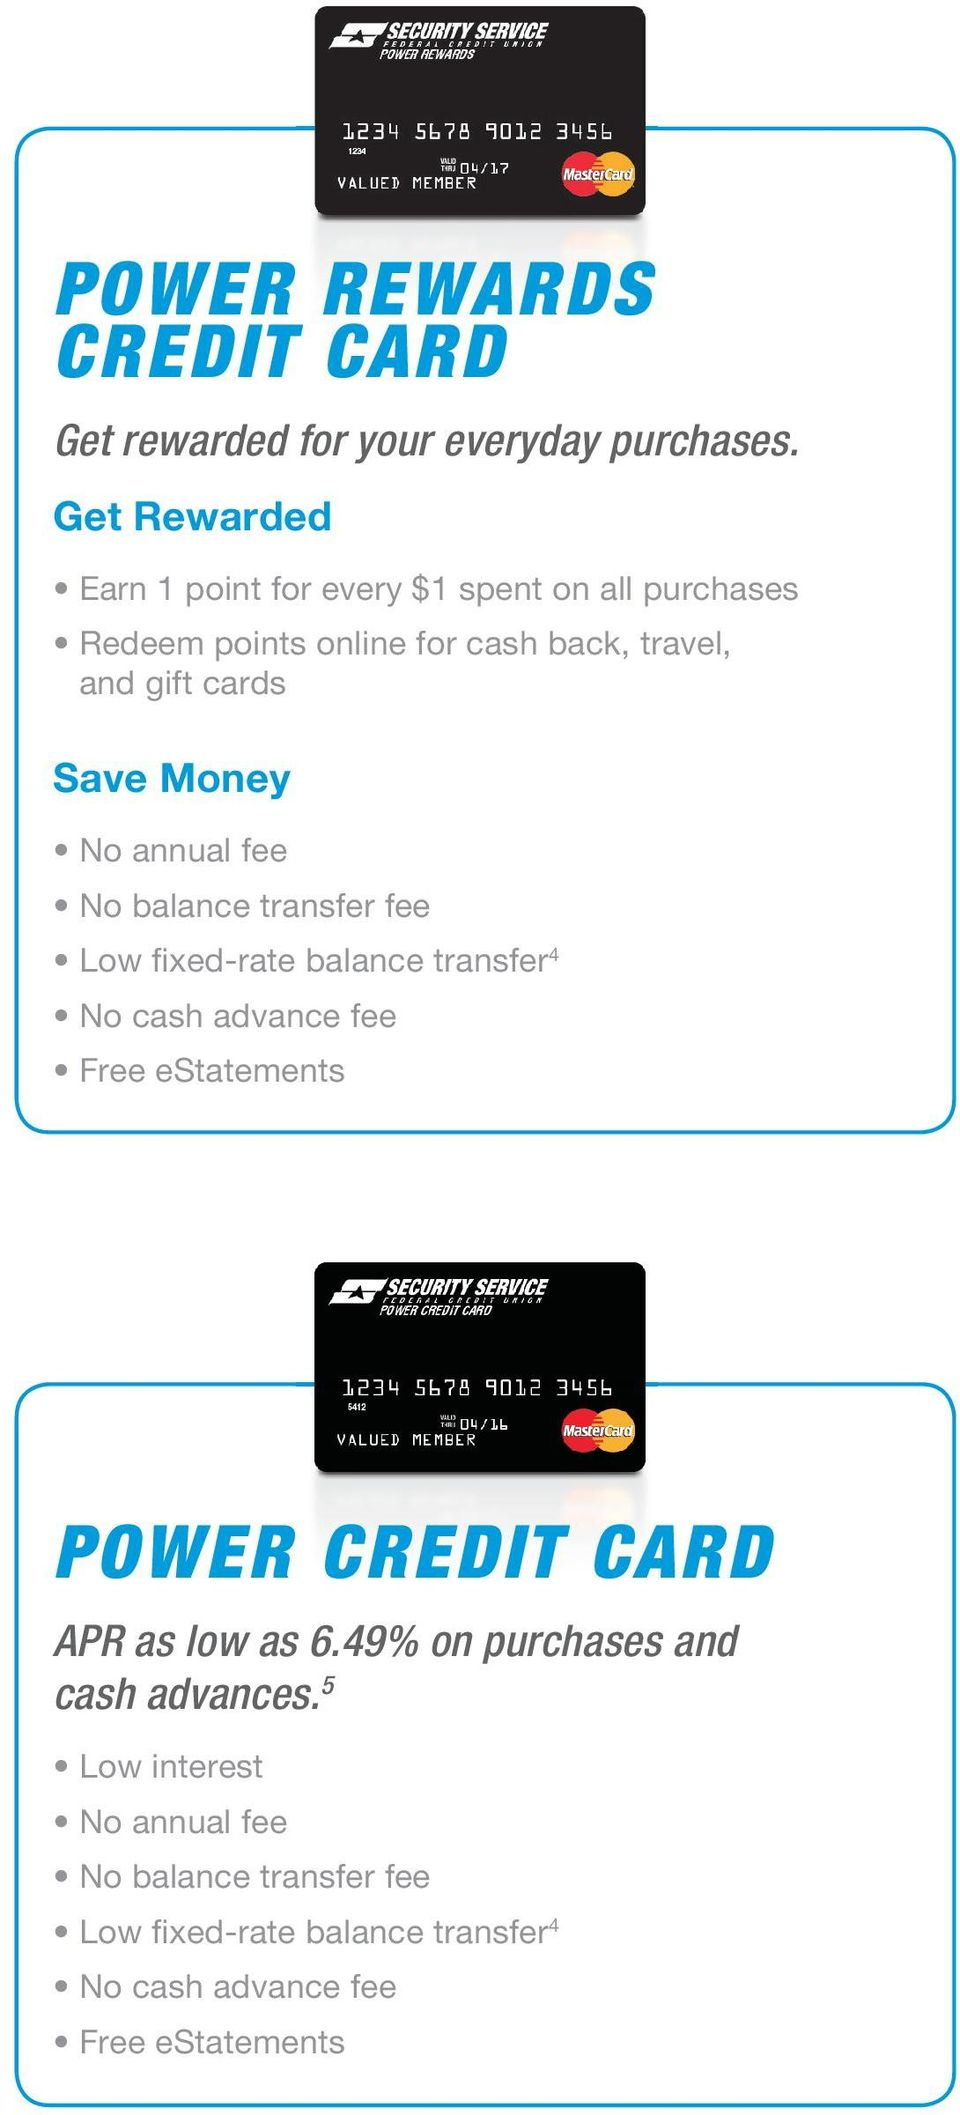 POWER ACCOUNT FEATURES - PDF